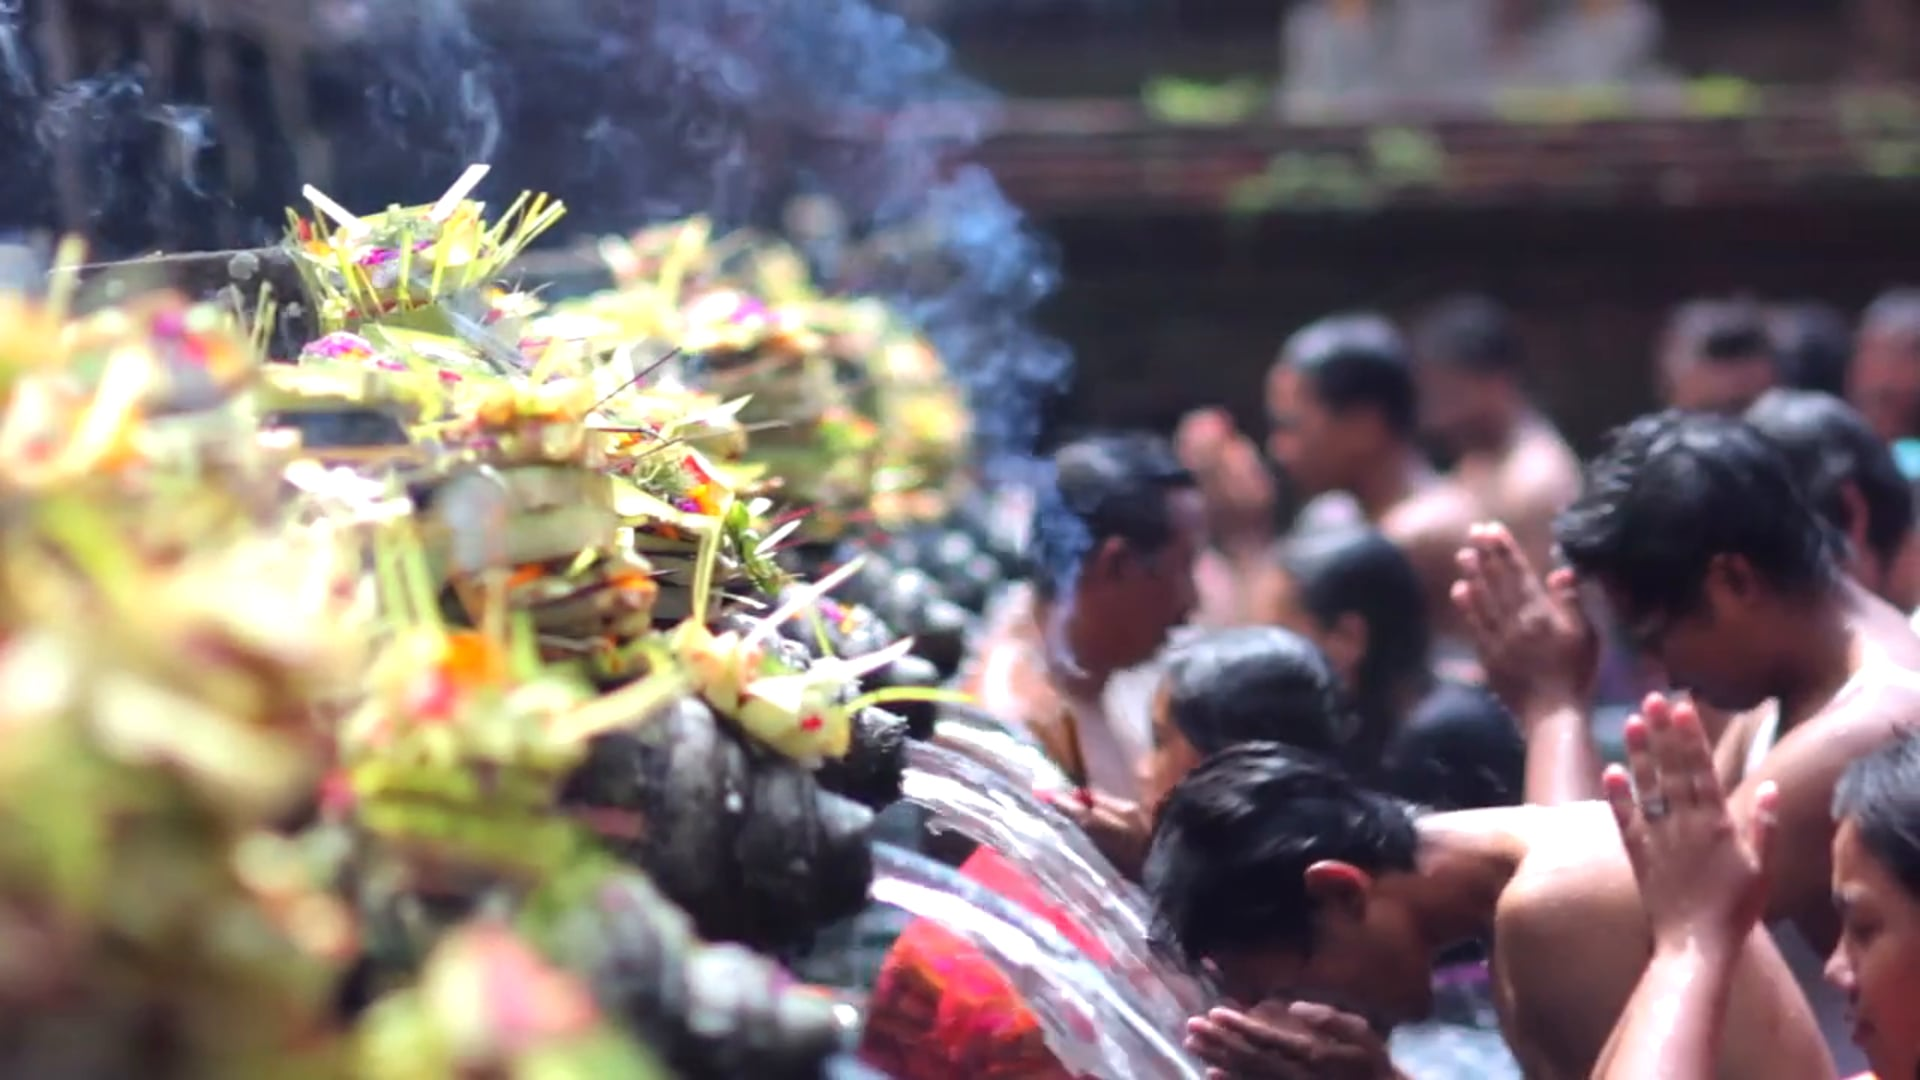 Behind Being: Journey of Indonesian art & culture, rooted in community